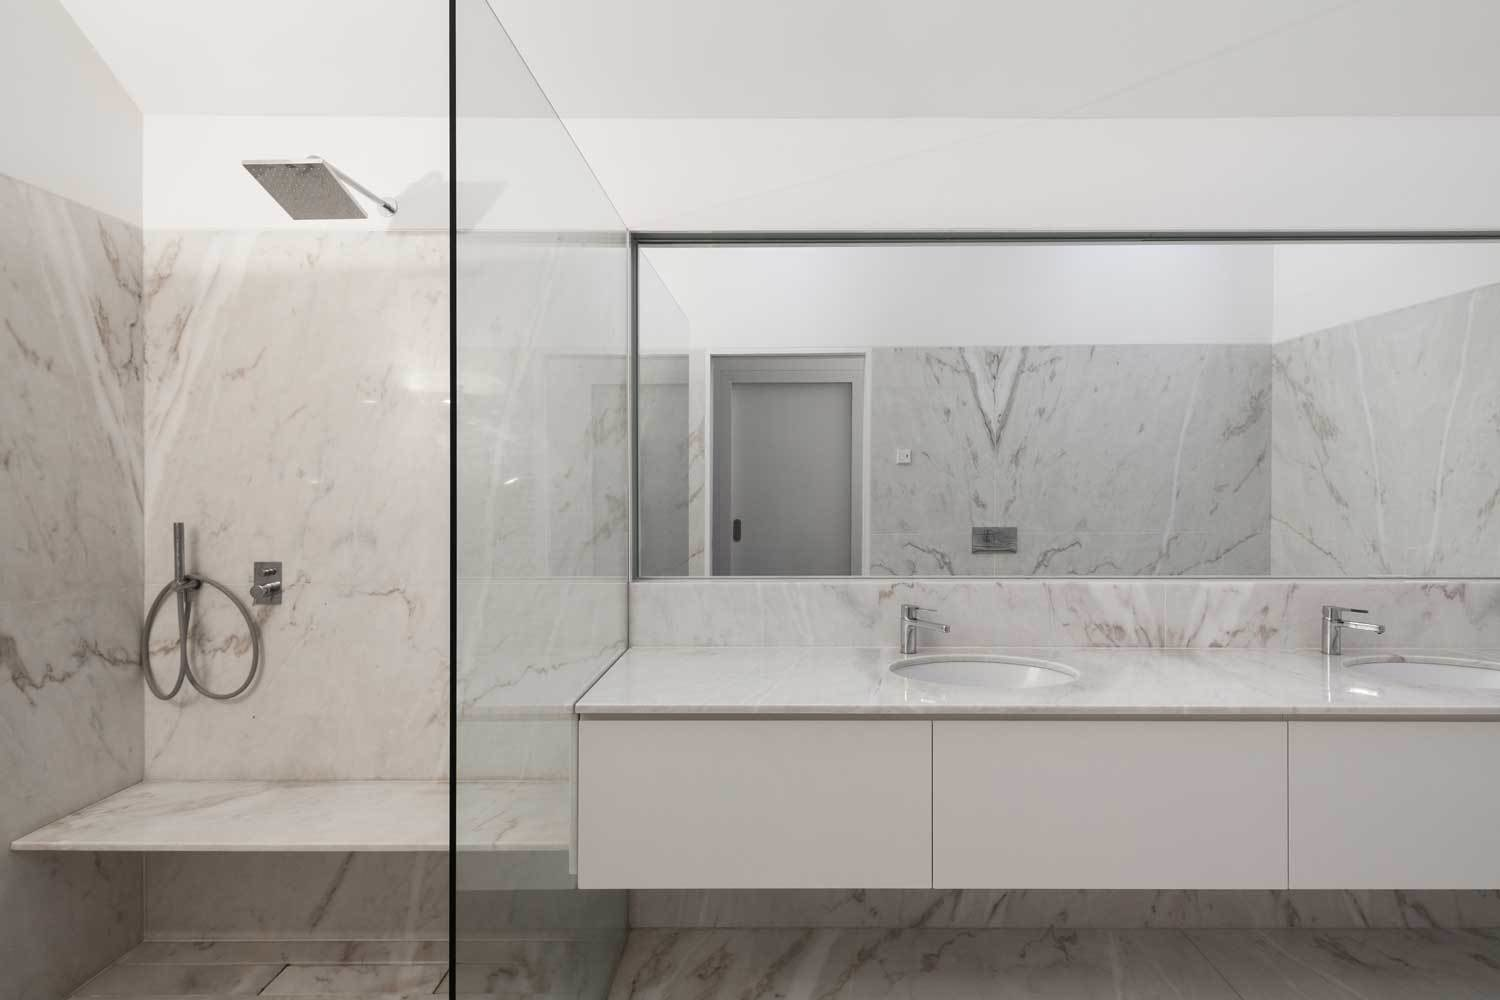 The bathrooms are lined in luxurious Estremoz marble. Tagged: Bath Room, Marble Counter, Undermount Sink, Marble Floor, and Enclosed Shower. House of Four Houses by Laura C. Mallonee